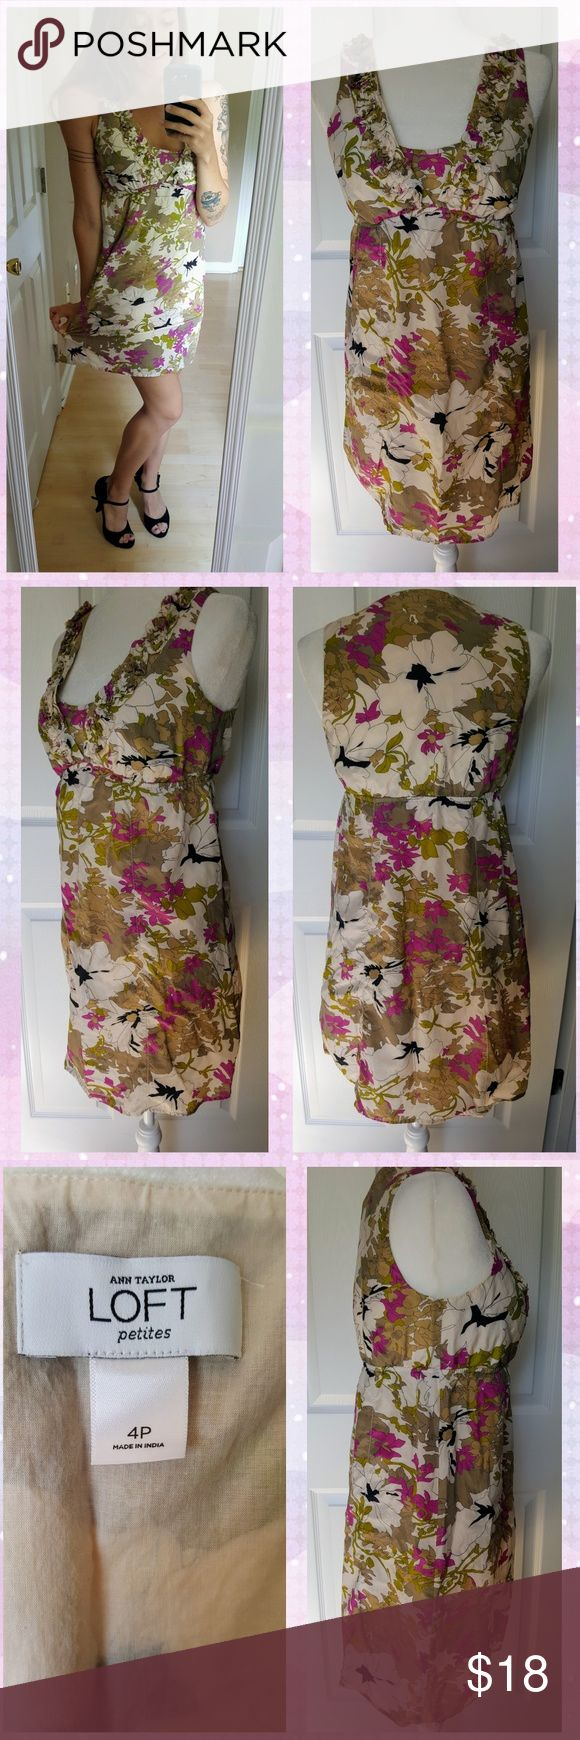 Ann Taylor LOFT Petites 4P Silk Blend Dress Perfect condition! Worn and washed once. No signs of wear. Pristine!  Gorgeous floral dress! Fully lined, V-neck cut with extra lining for cute coverage and modesty. Perfect for any occasion, career or casual. Super lightweight and comfortable. Stretchy, fitted waist. Fun and pretty details where hems on body of the dress would be, with tiny crochet like details. Ivory, Black, Green, and Purple.   Shell: 55% Silk, 45% Cotton Lining: 100% Cotton…